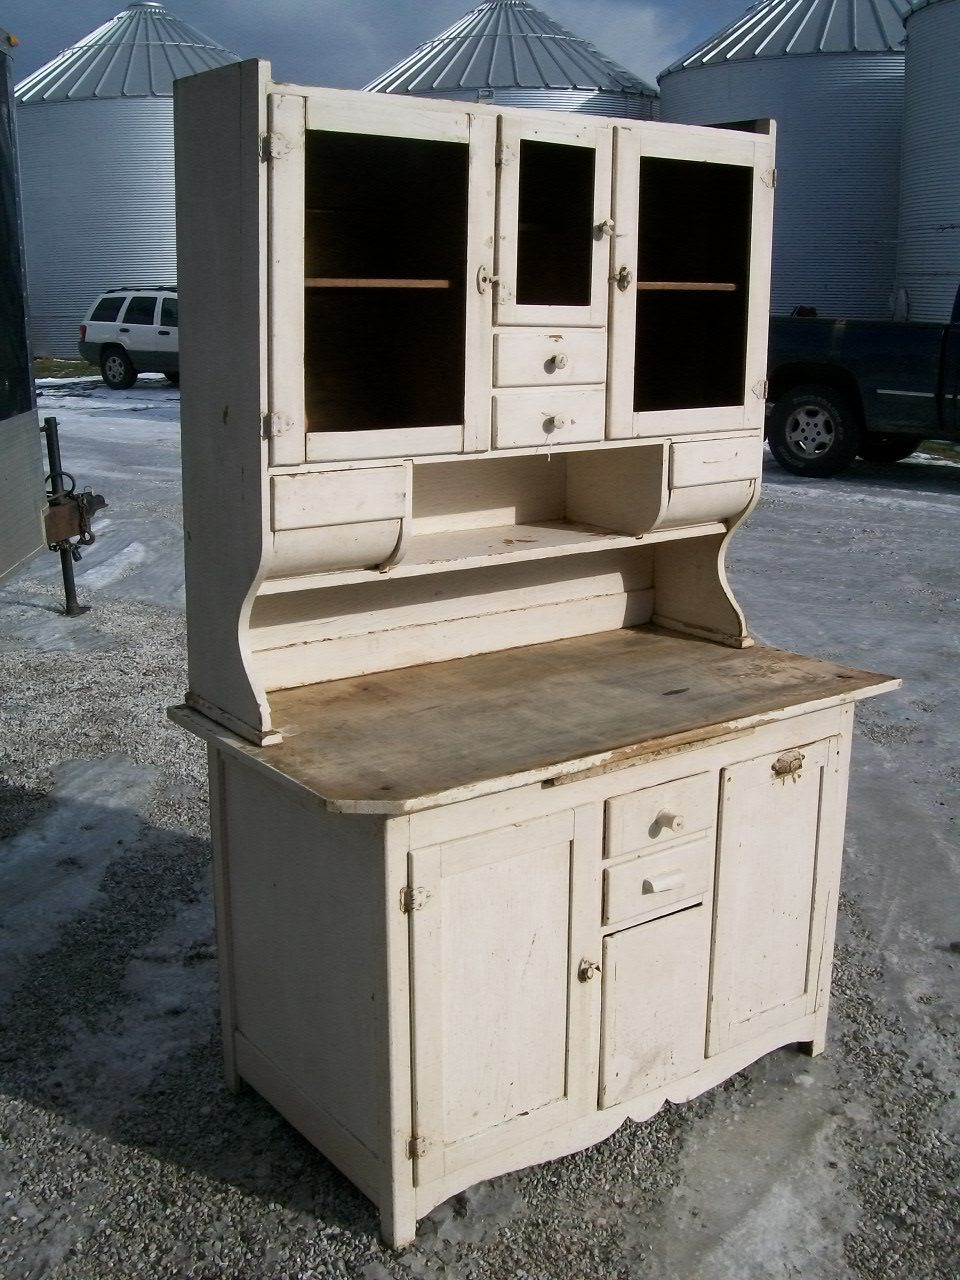 Oak Bakers Kitchen Cupboard 2 Piece Wooden Cabinet For Flour Sugar And Es From Late 1800 S 589 00 Via Etsy